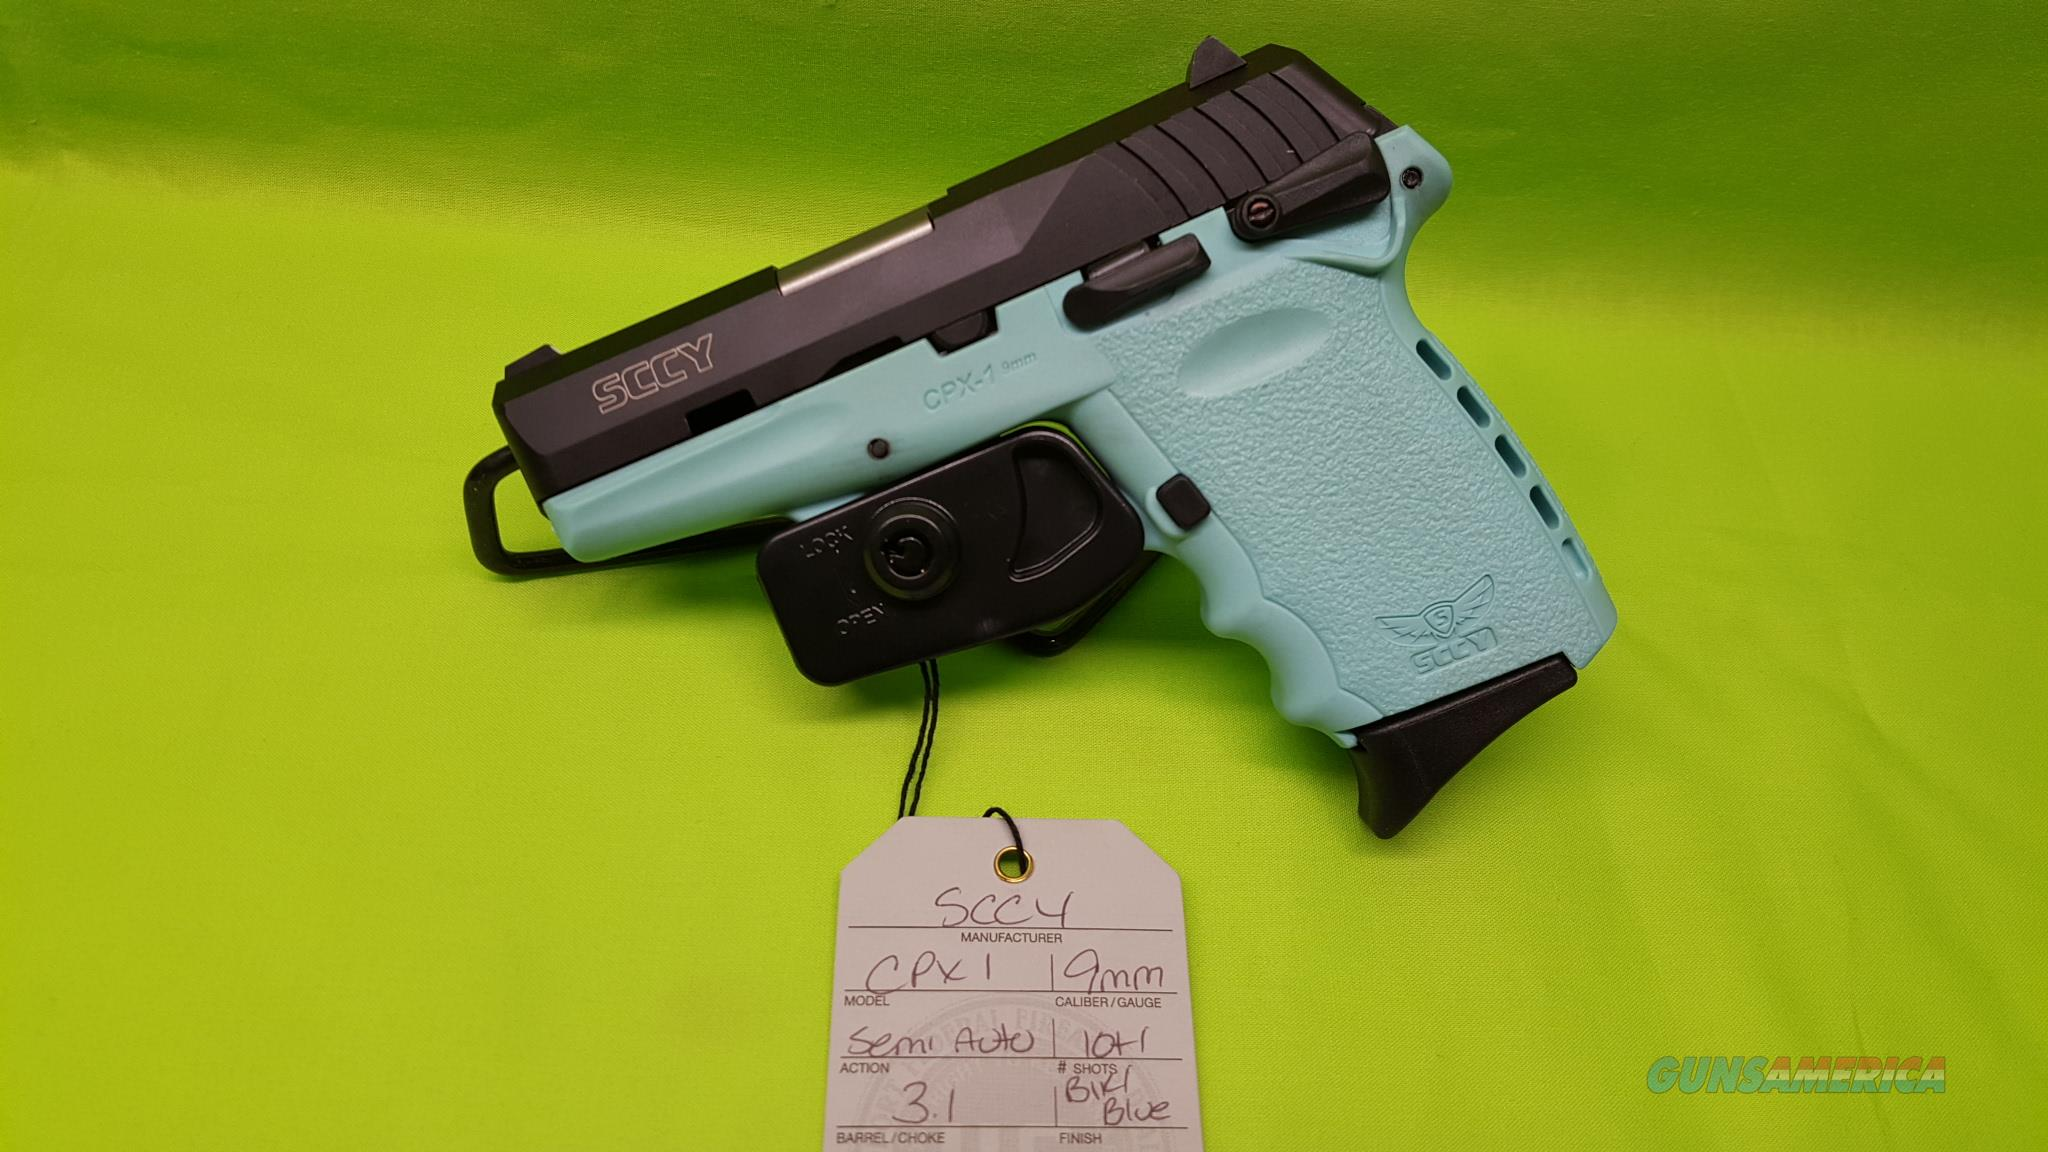 SCCY CPX-1 CPX 1 CPX1 9 9MM 10RD BLK/ BLUE TEAL  Guns > Pistols > SCCY Pistols > CPX1